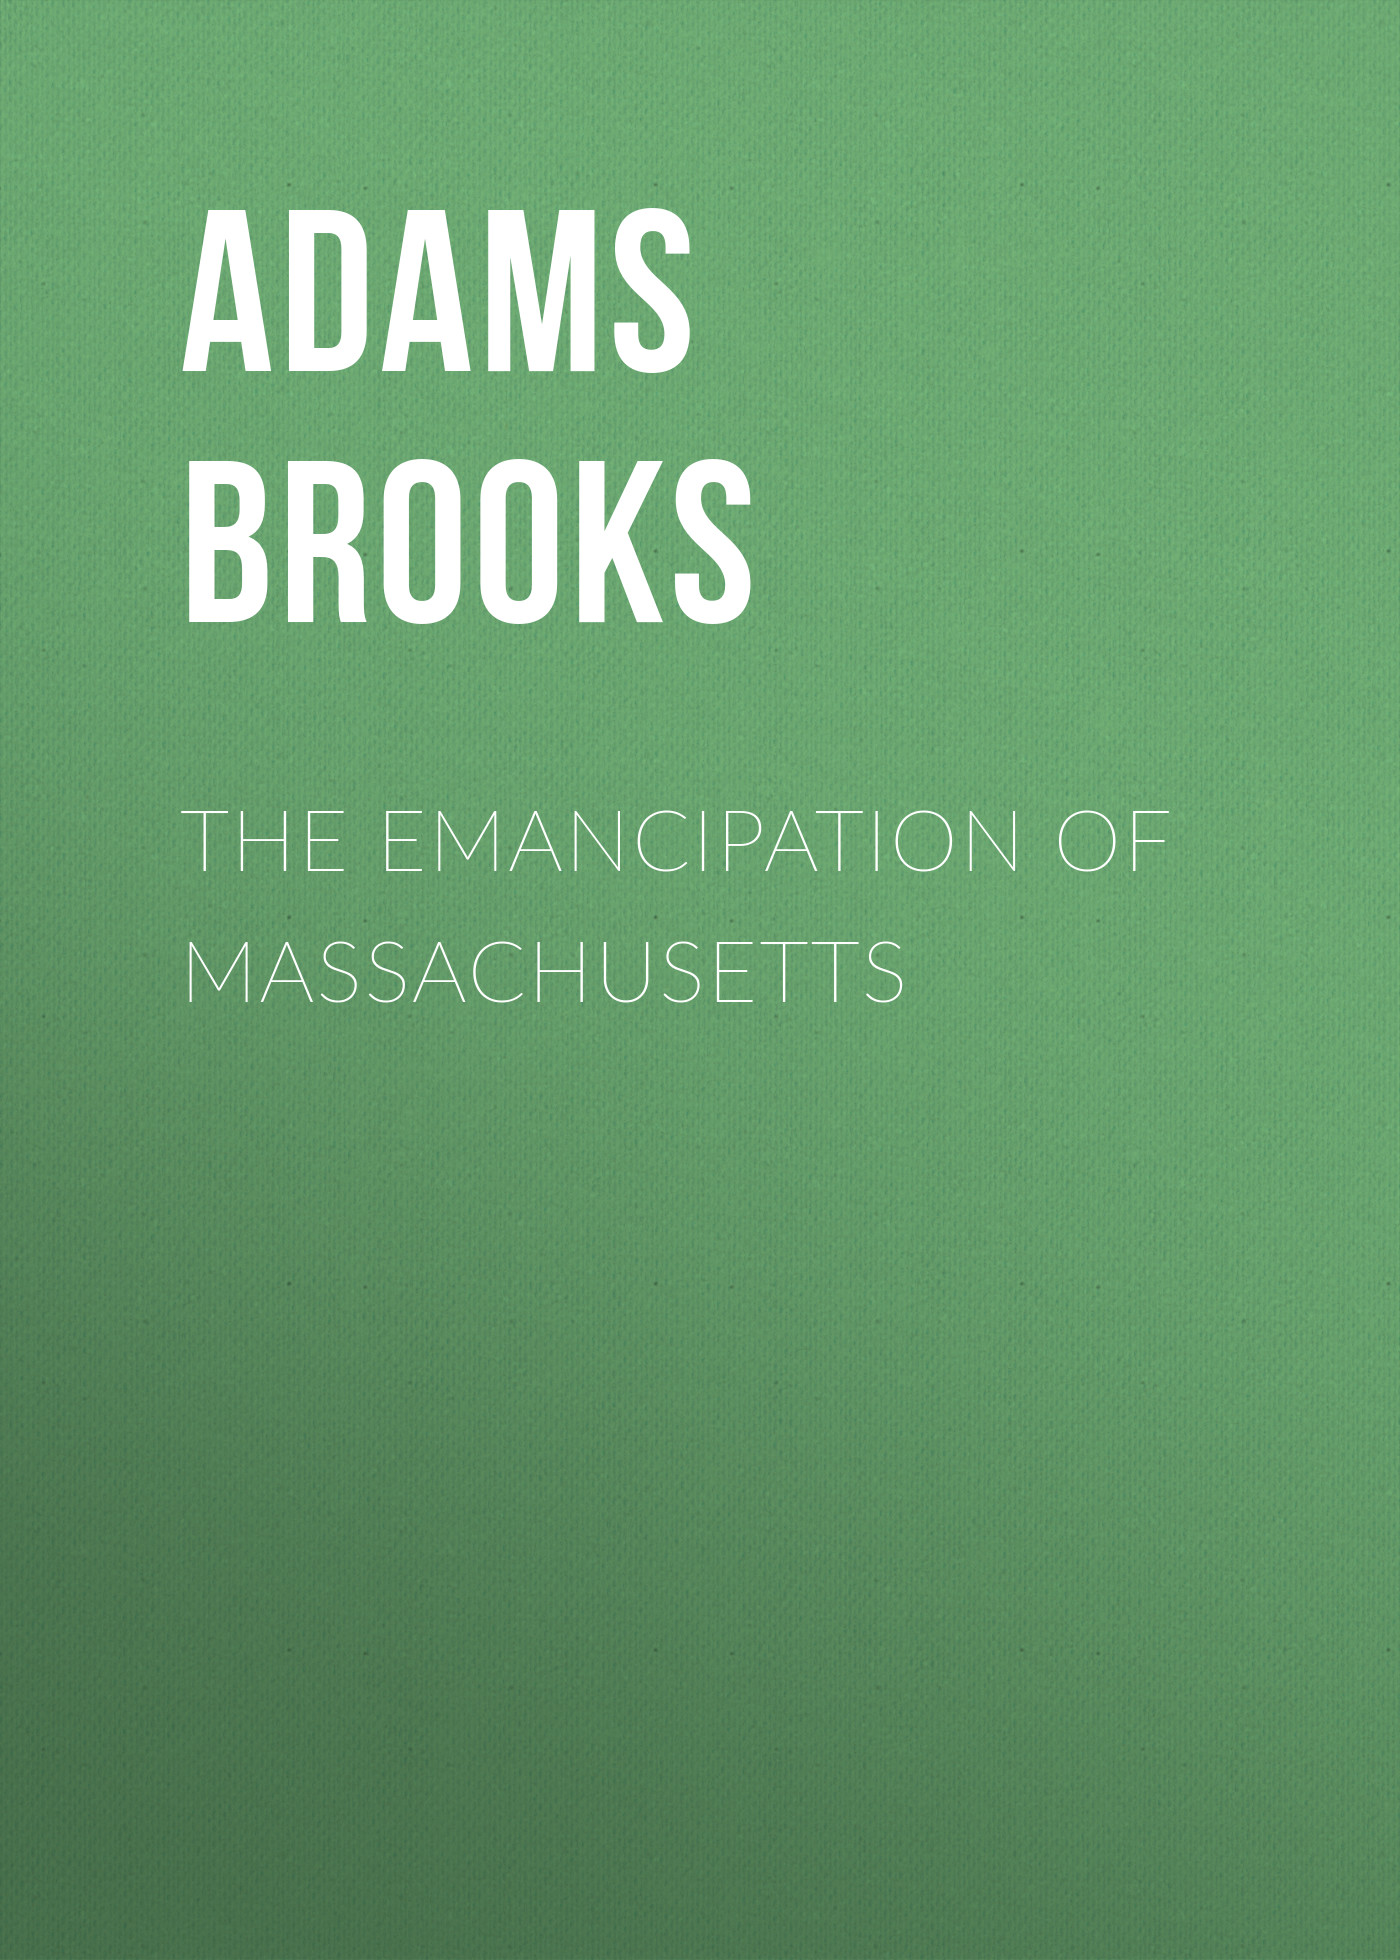 Adams Brooks The Emancipation of Massachusetts adams brooks the law of civilization and decay